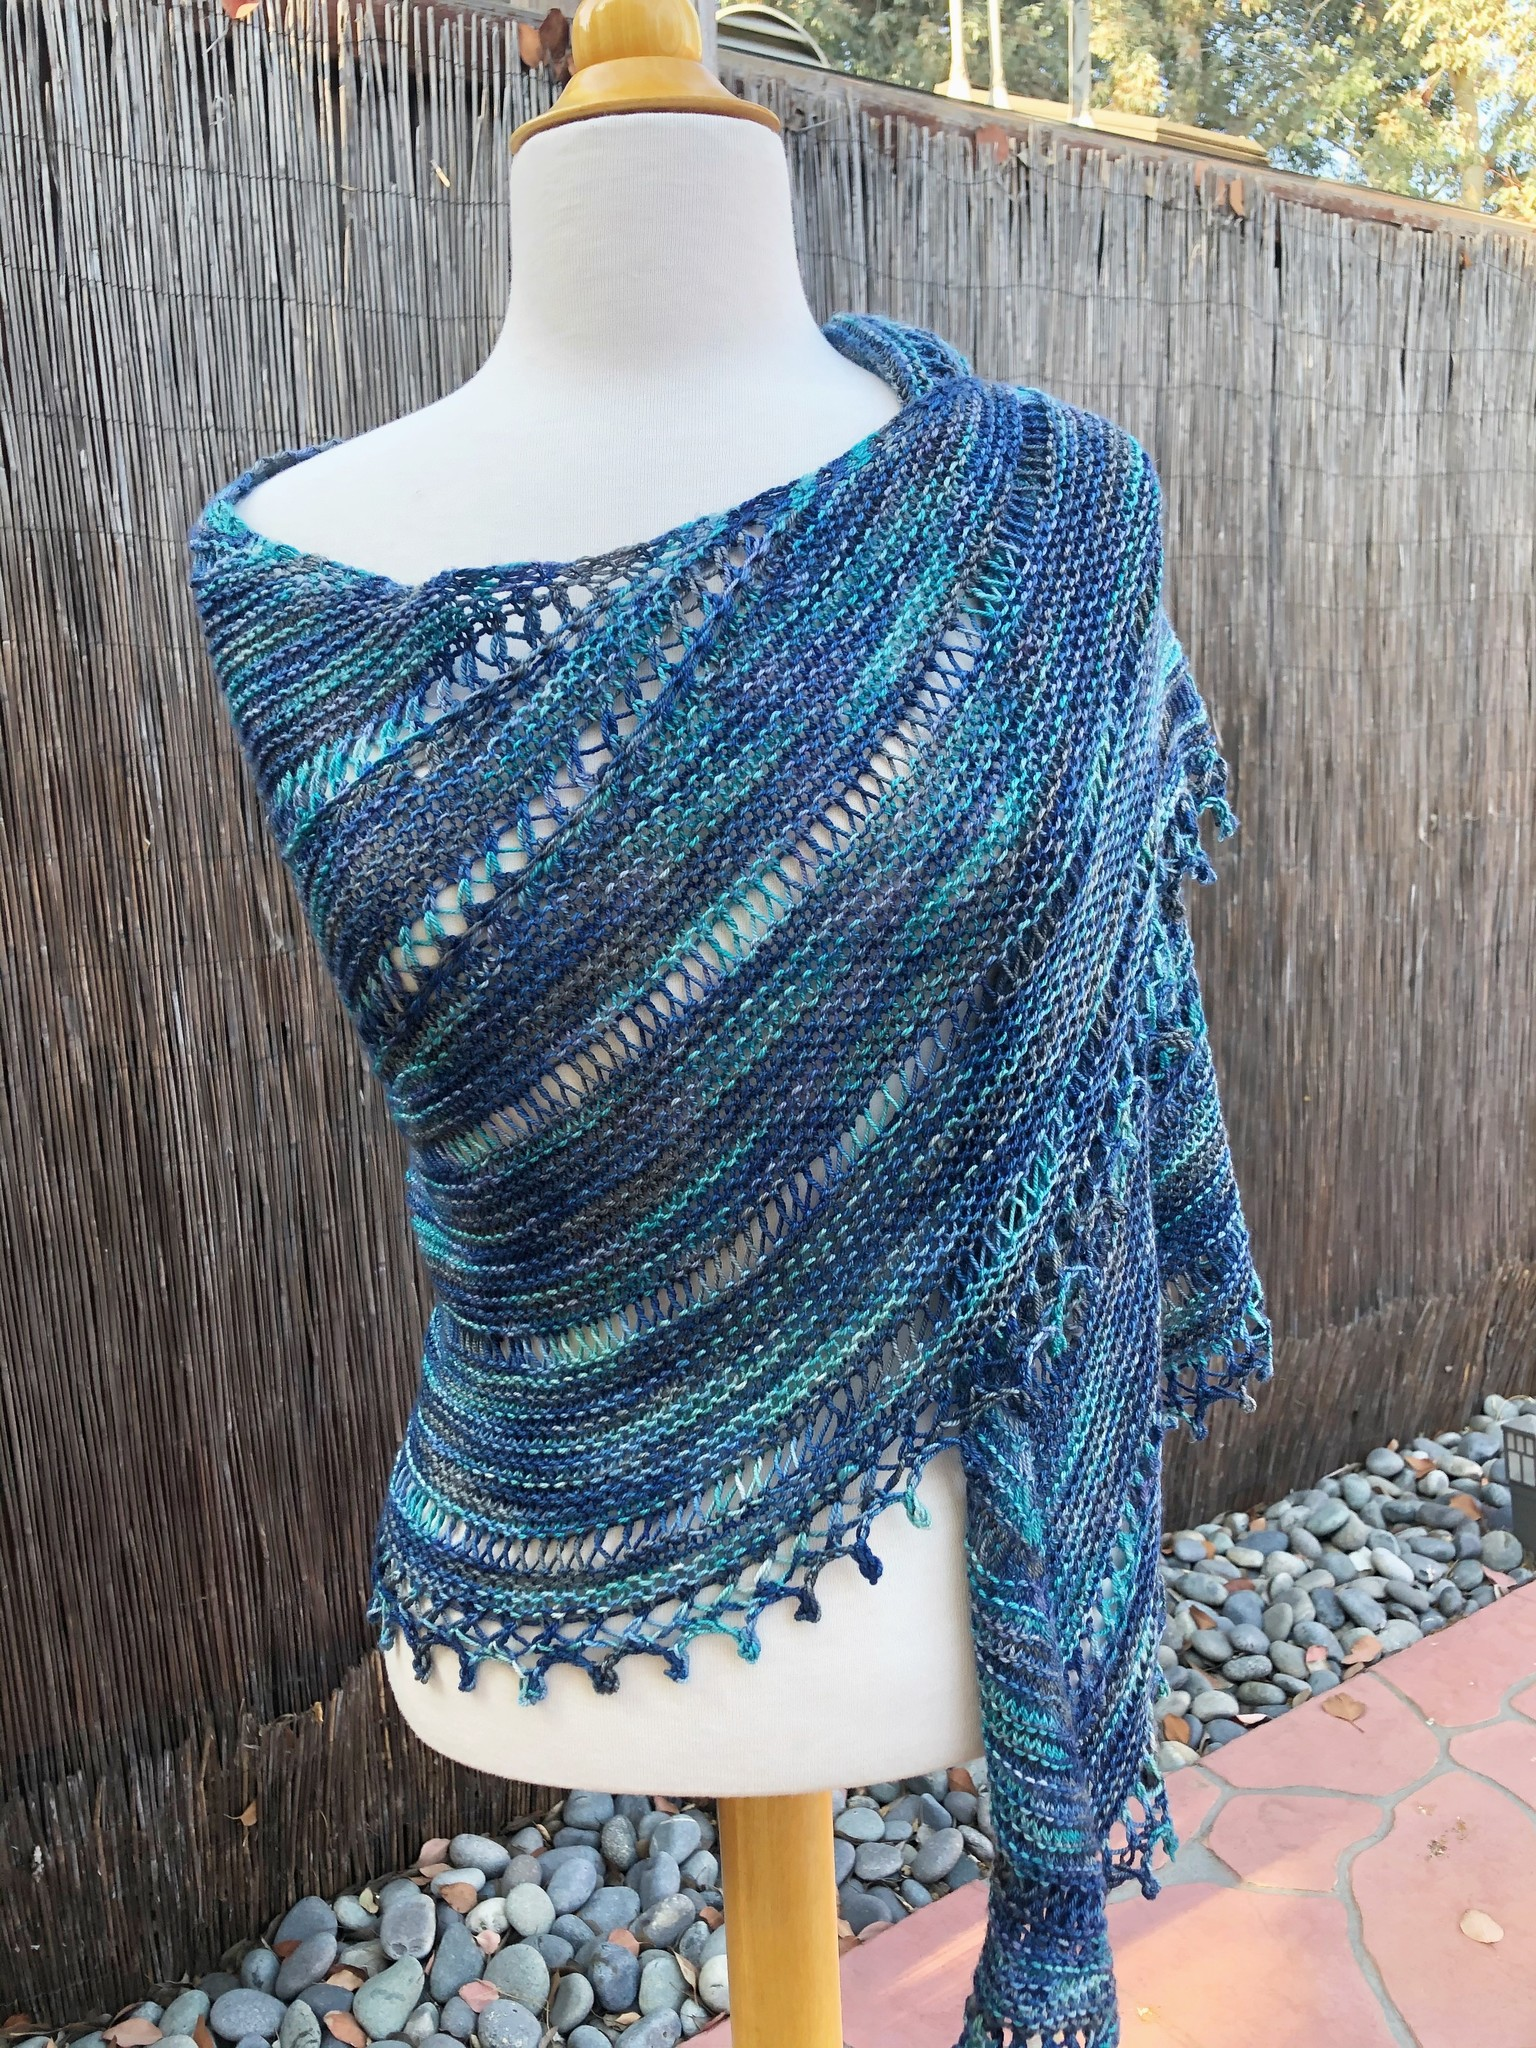 Yarnover Truck Bella Vista Shawl Kit